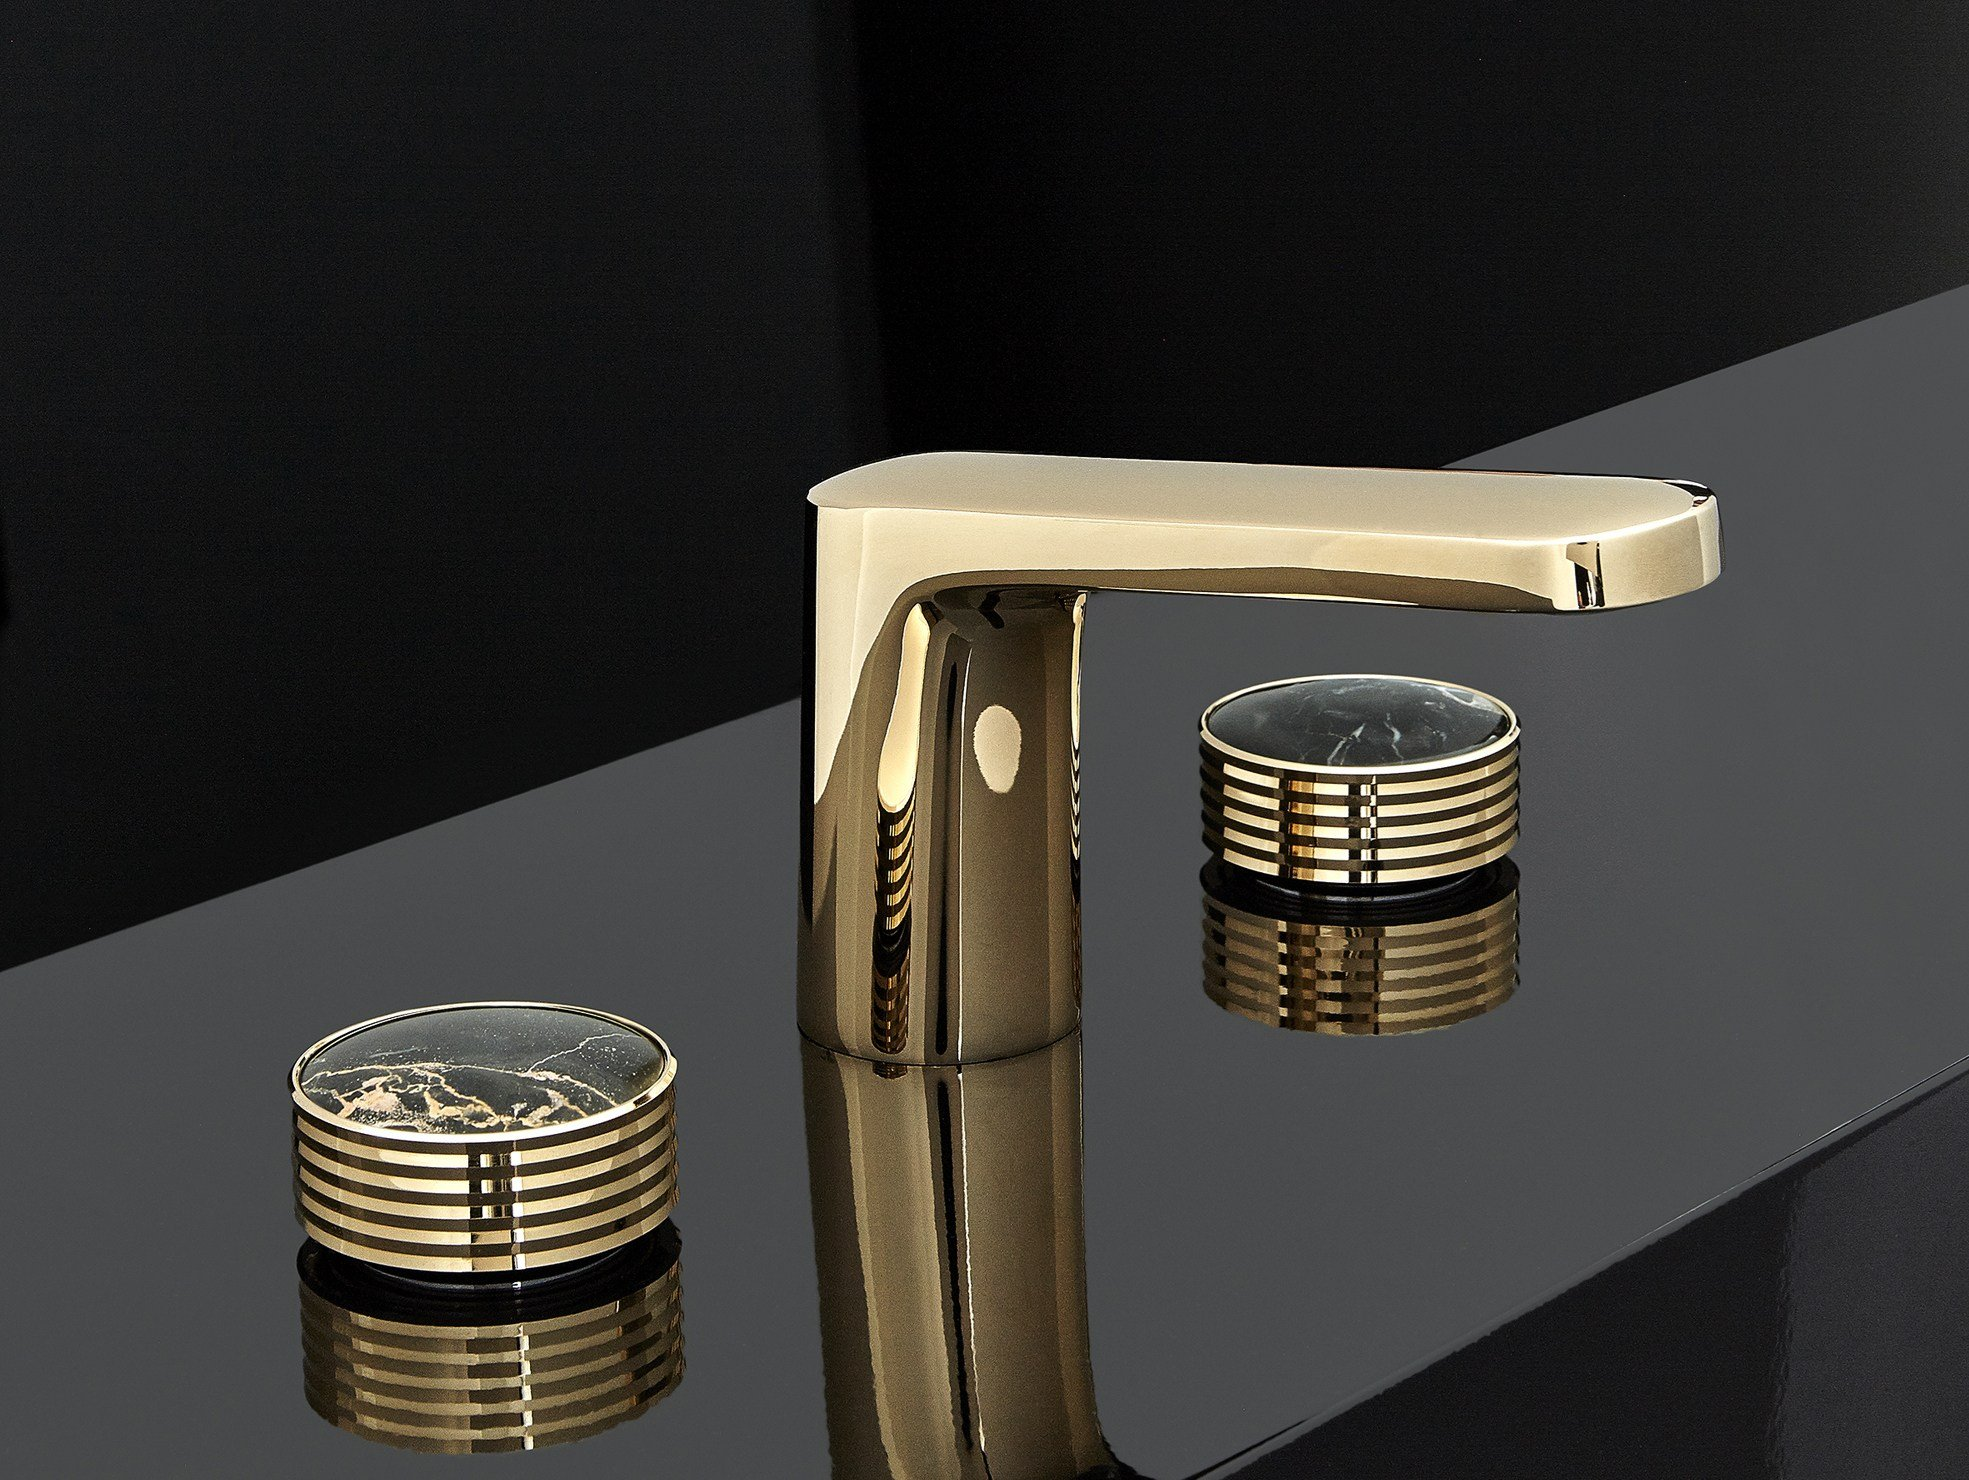 Texture gold colour washbasin mixer by fima carlo frattini for Rubinetteria frattini